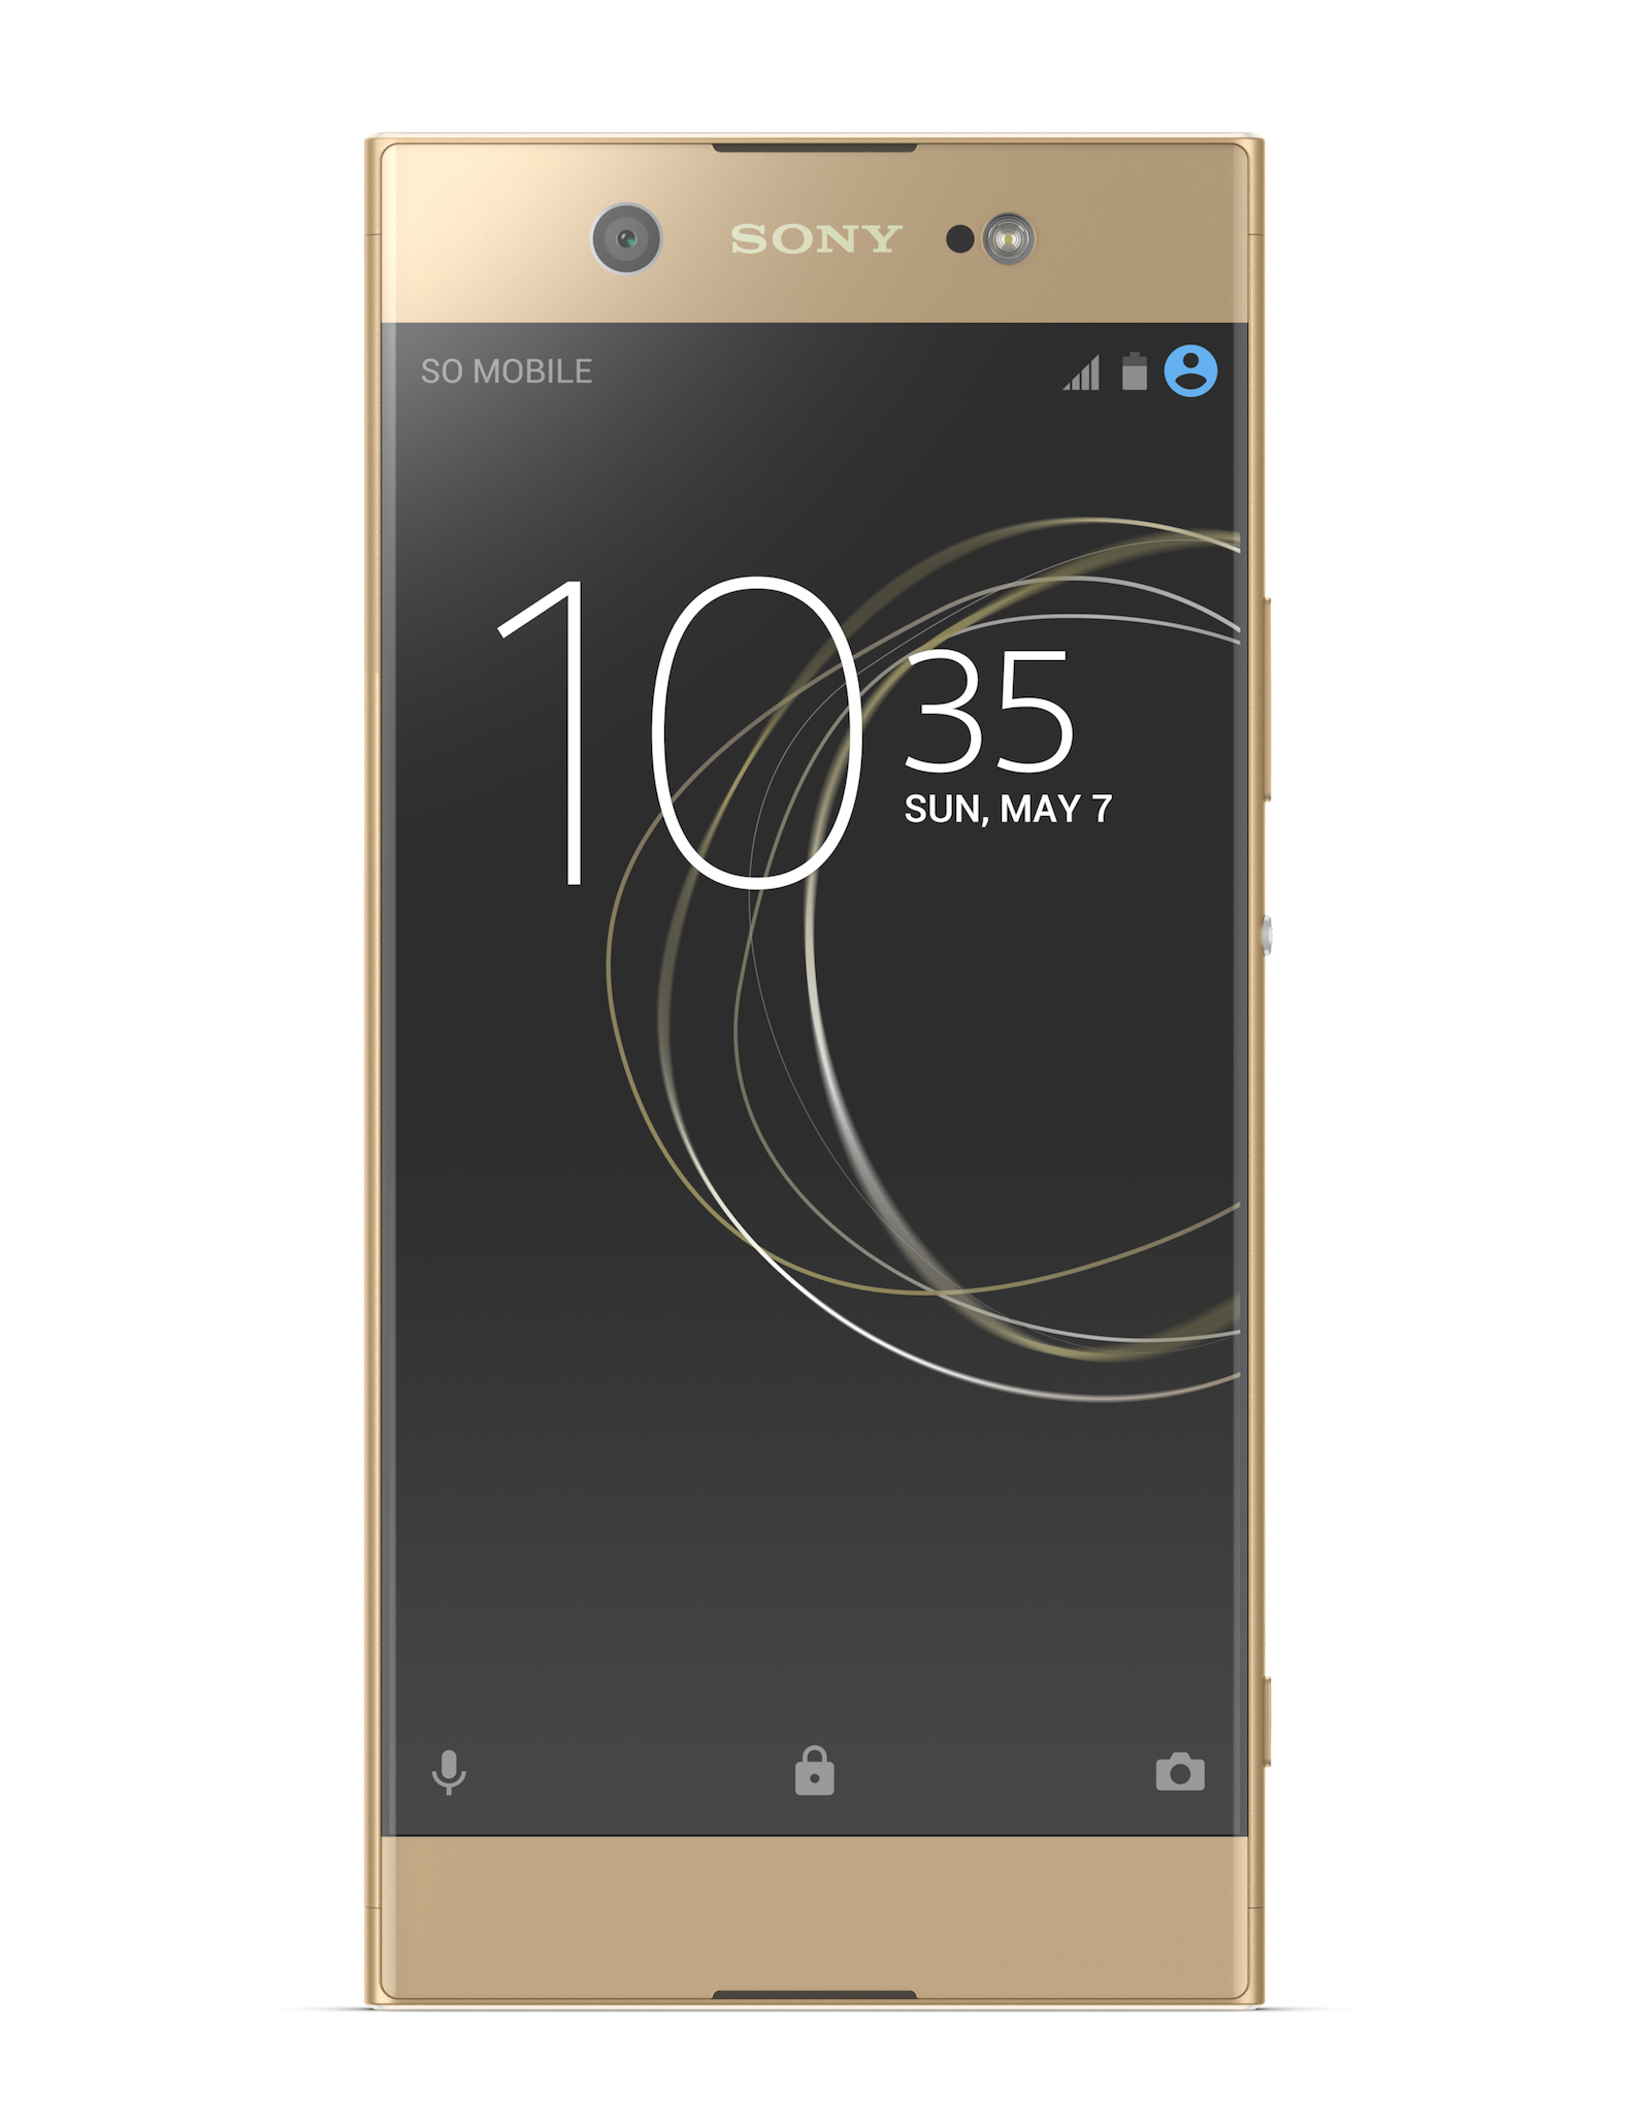 Sony G3121 Device Specifications